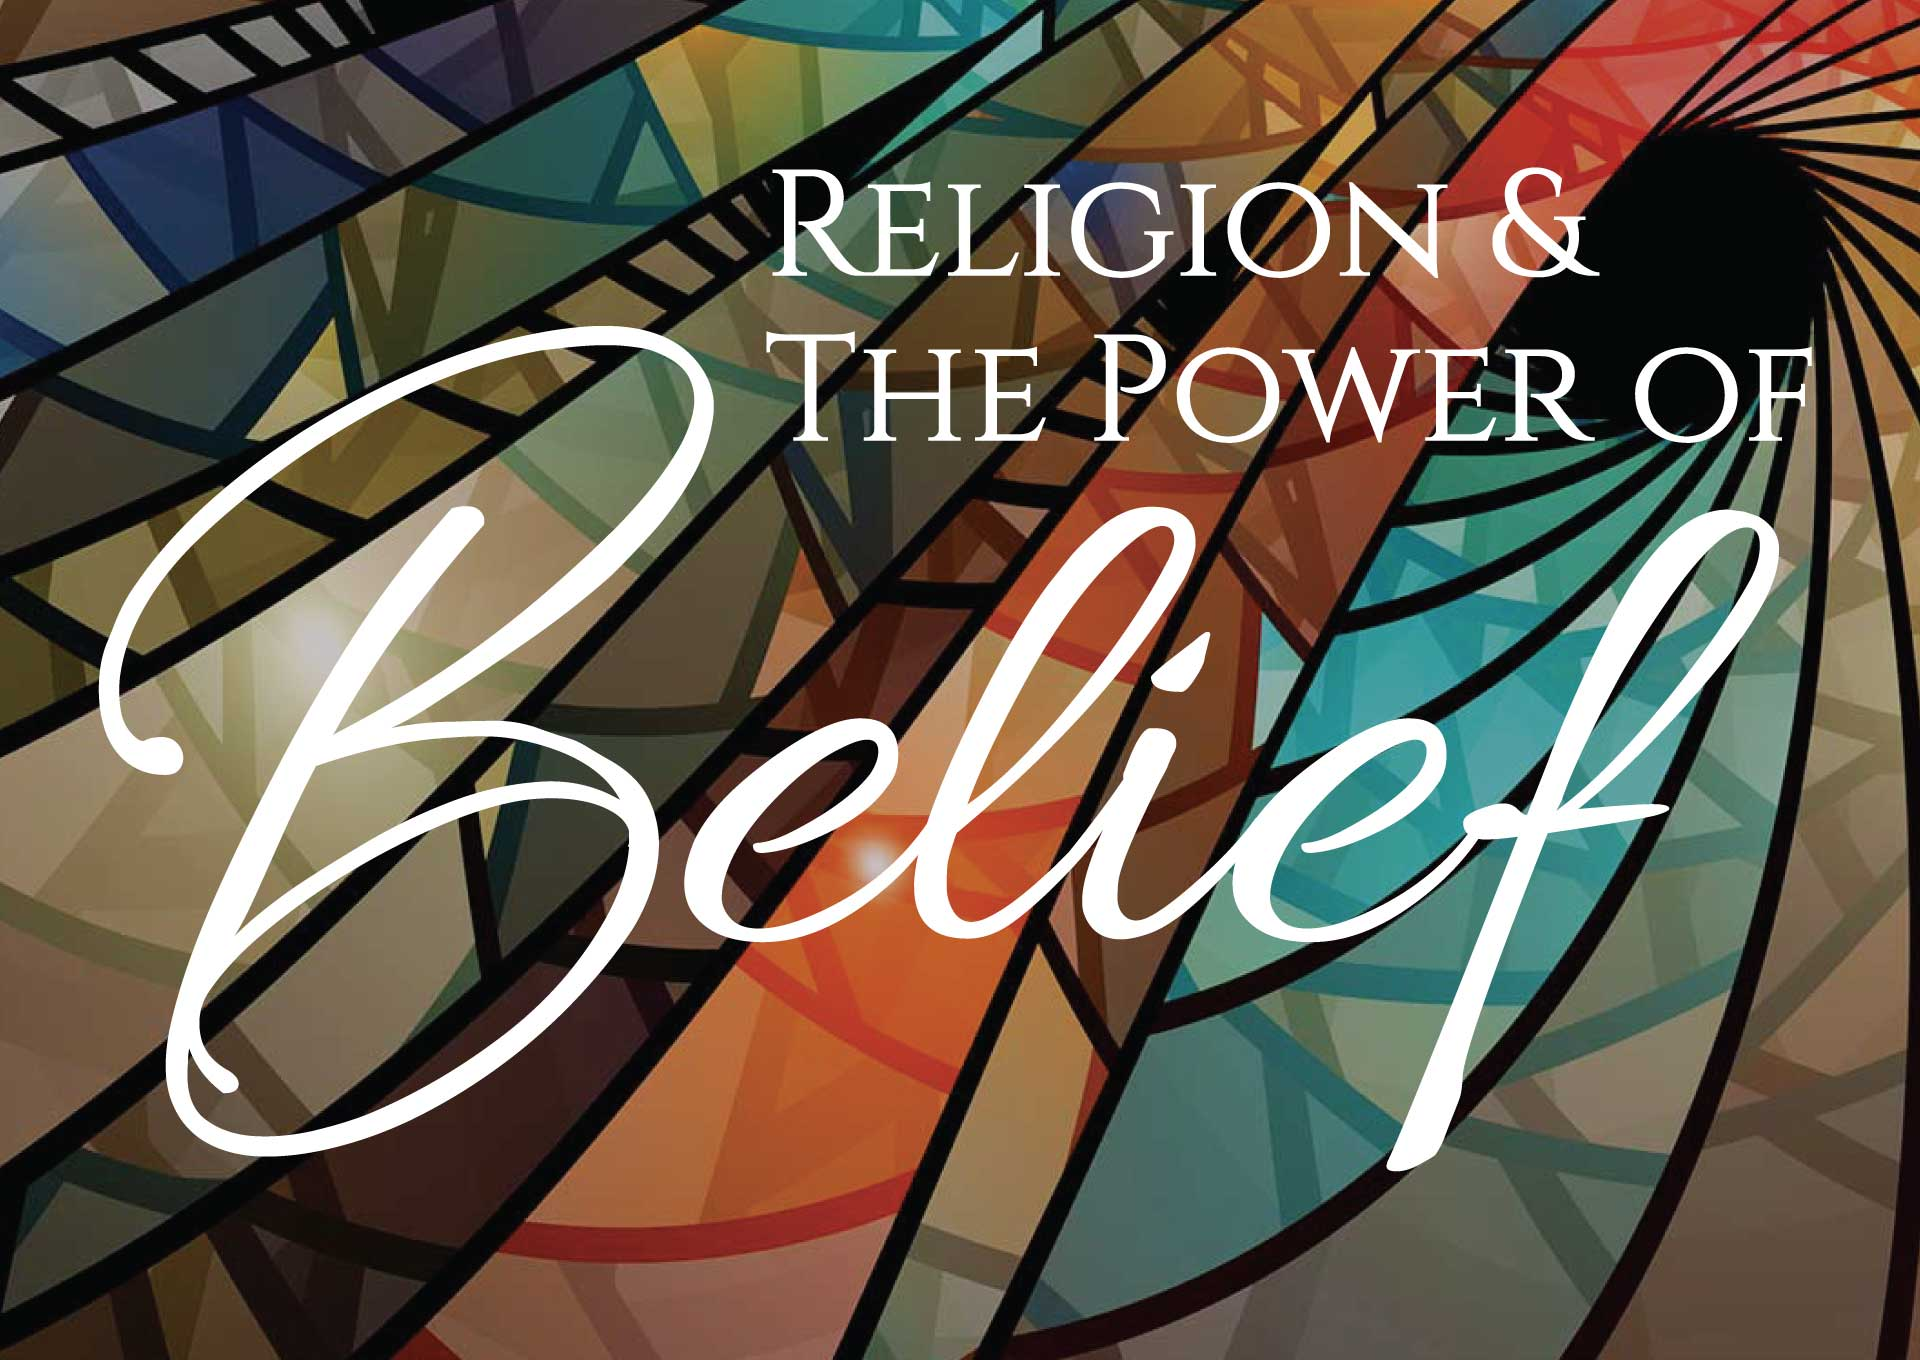 Religion and The Power of Belief